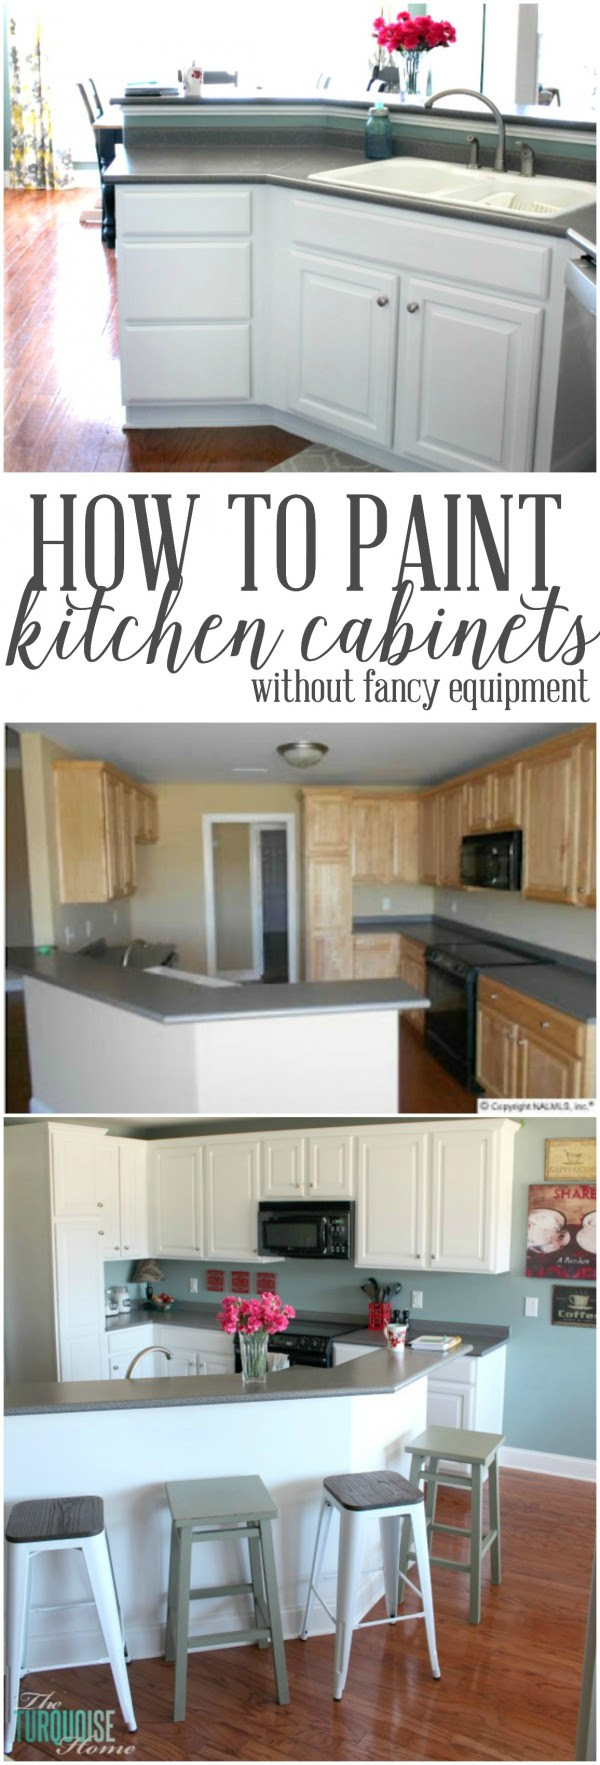 Paint Kitchen Cabinets without Fancy Equipment